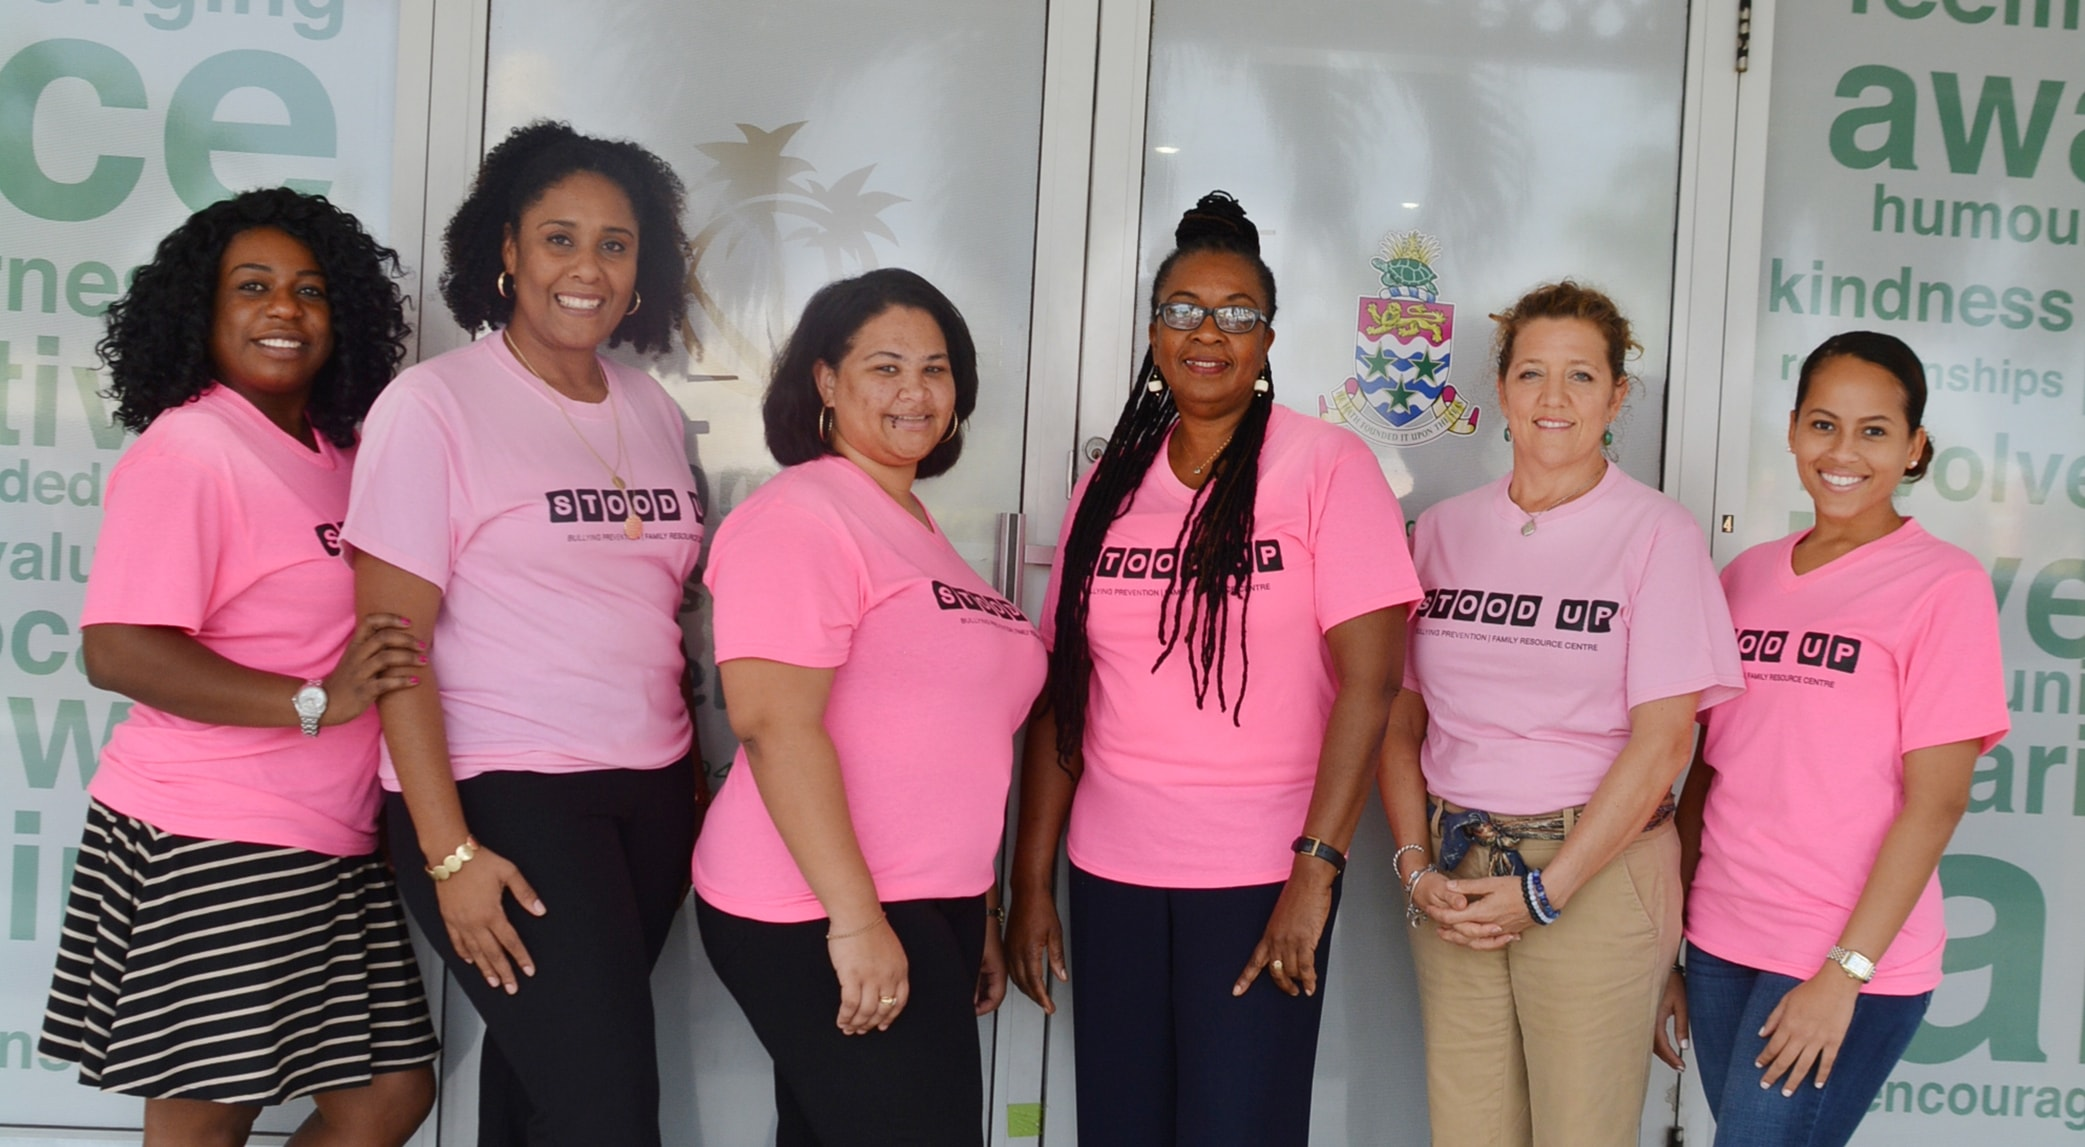 Family Resource Centre staff. Racquel Duhaney, Charmaine Miller, Jessica Smith, Brenda Dawkins, Miles Ruby and Erin Hislop.